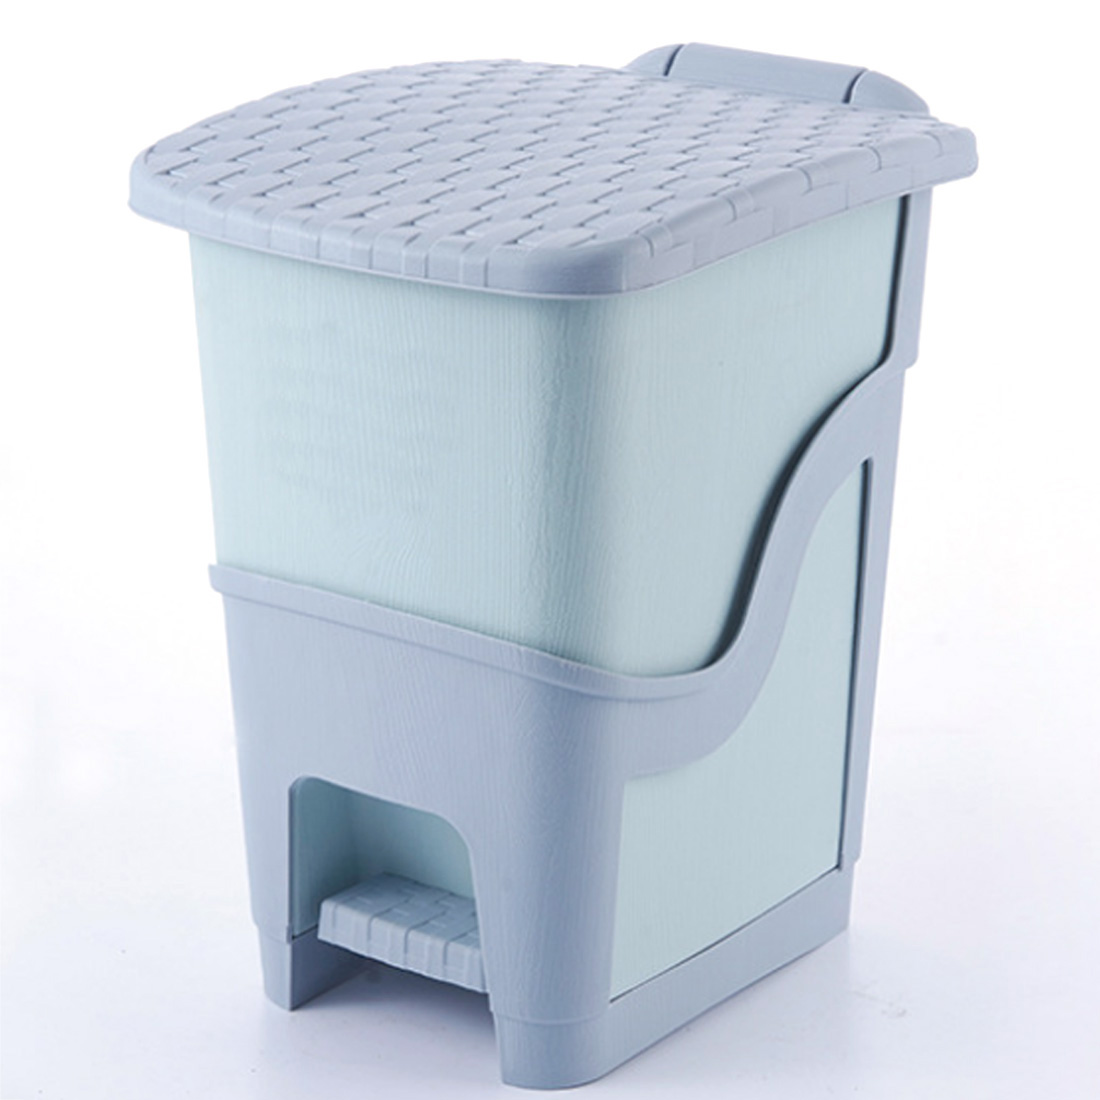 8l Foot Pedal Type Waste Bin Trash Can For Home Office Wastebasket